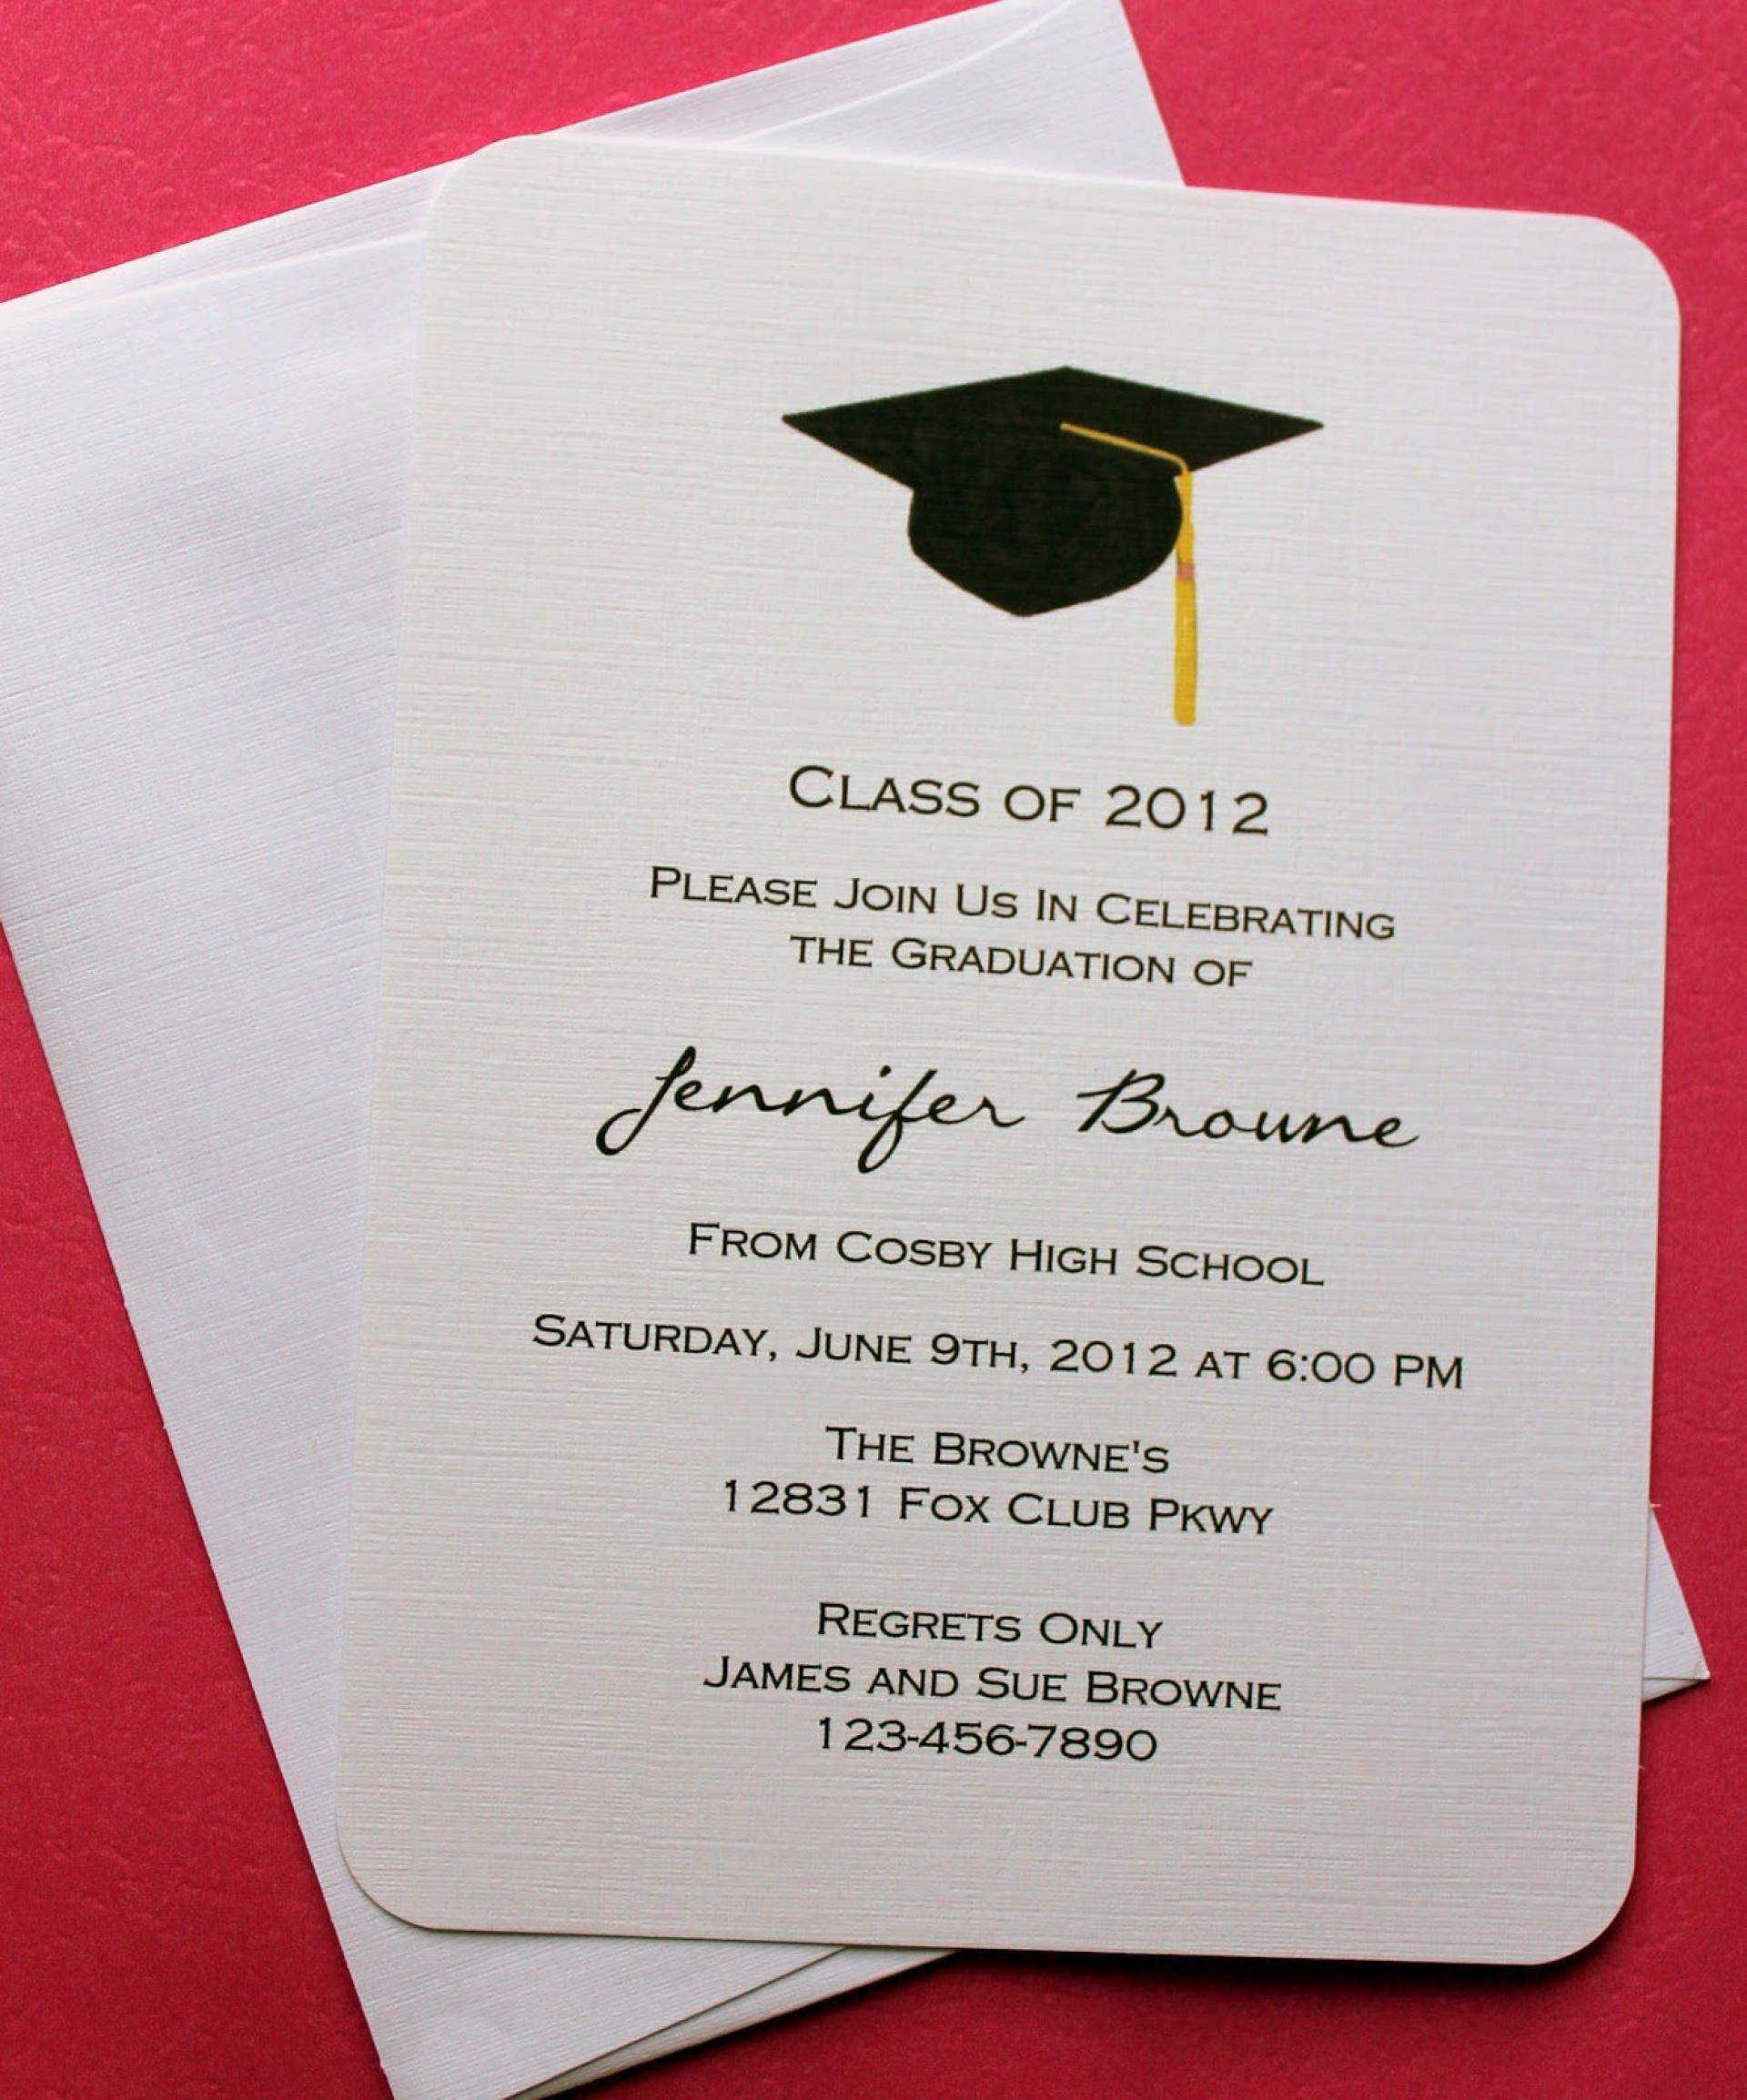 007 Fantastic College Graduation Invitation Template Image  Templates Free Party1920